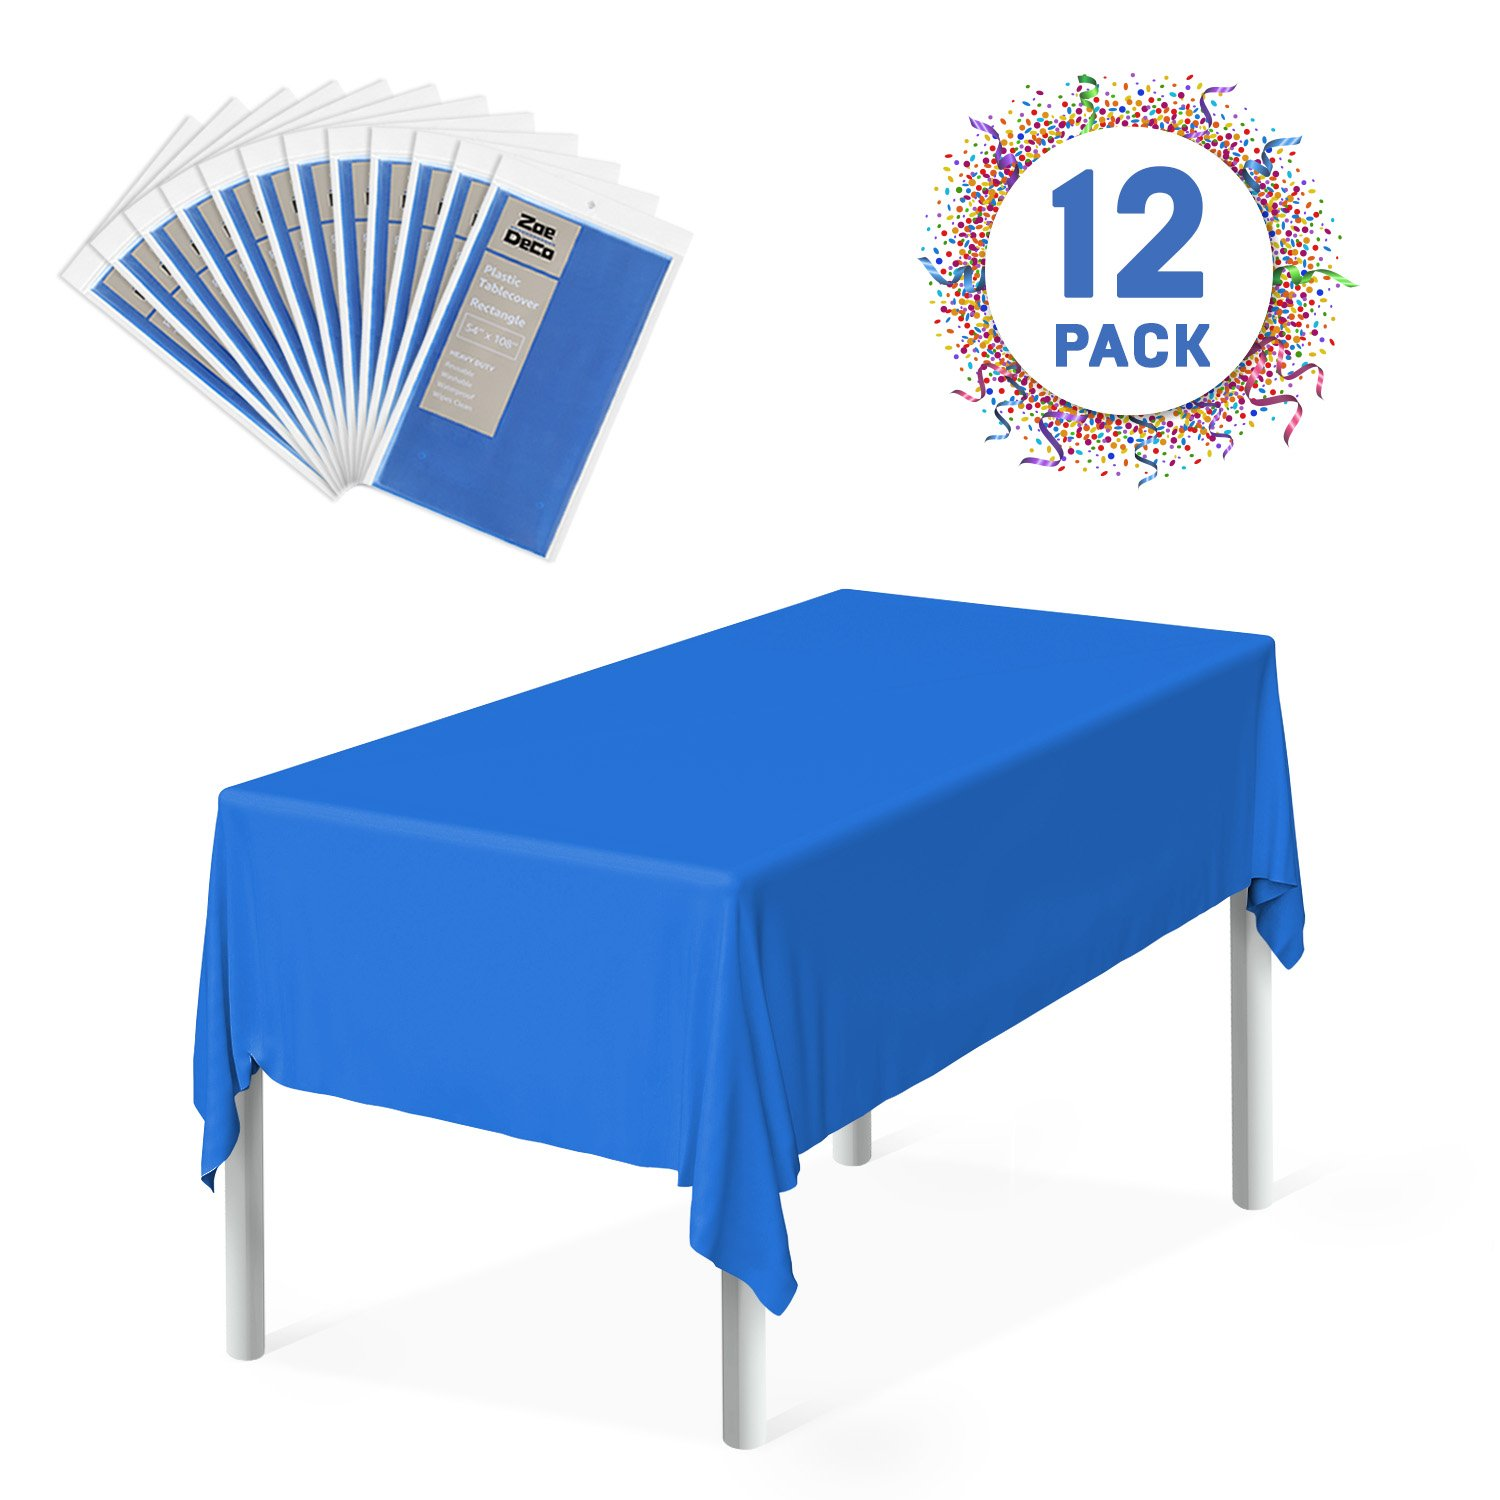 Zoe Deco Plastic Tablecloth, 54'' x 108'' Blue Tablecloth - 12 Pack - Rectangle Tablecloth for Parties, Graduations, and Picnics by Zoe Deco (Image #1)